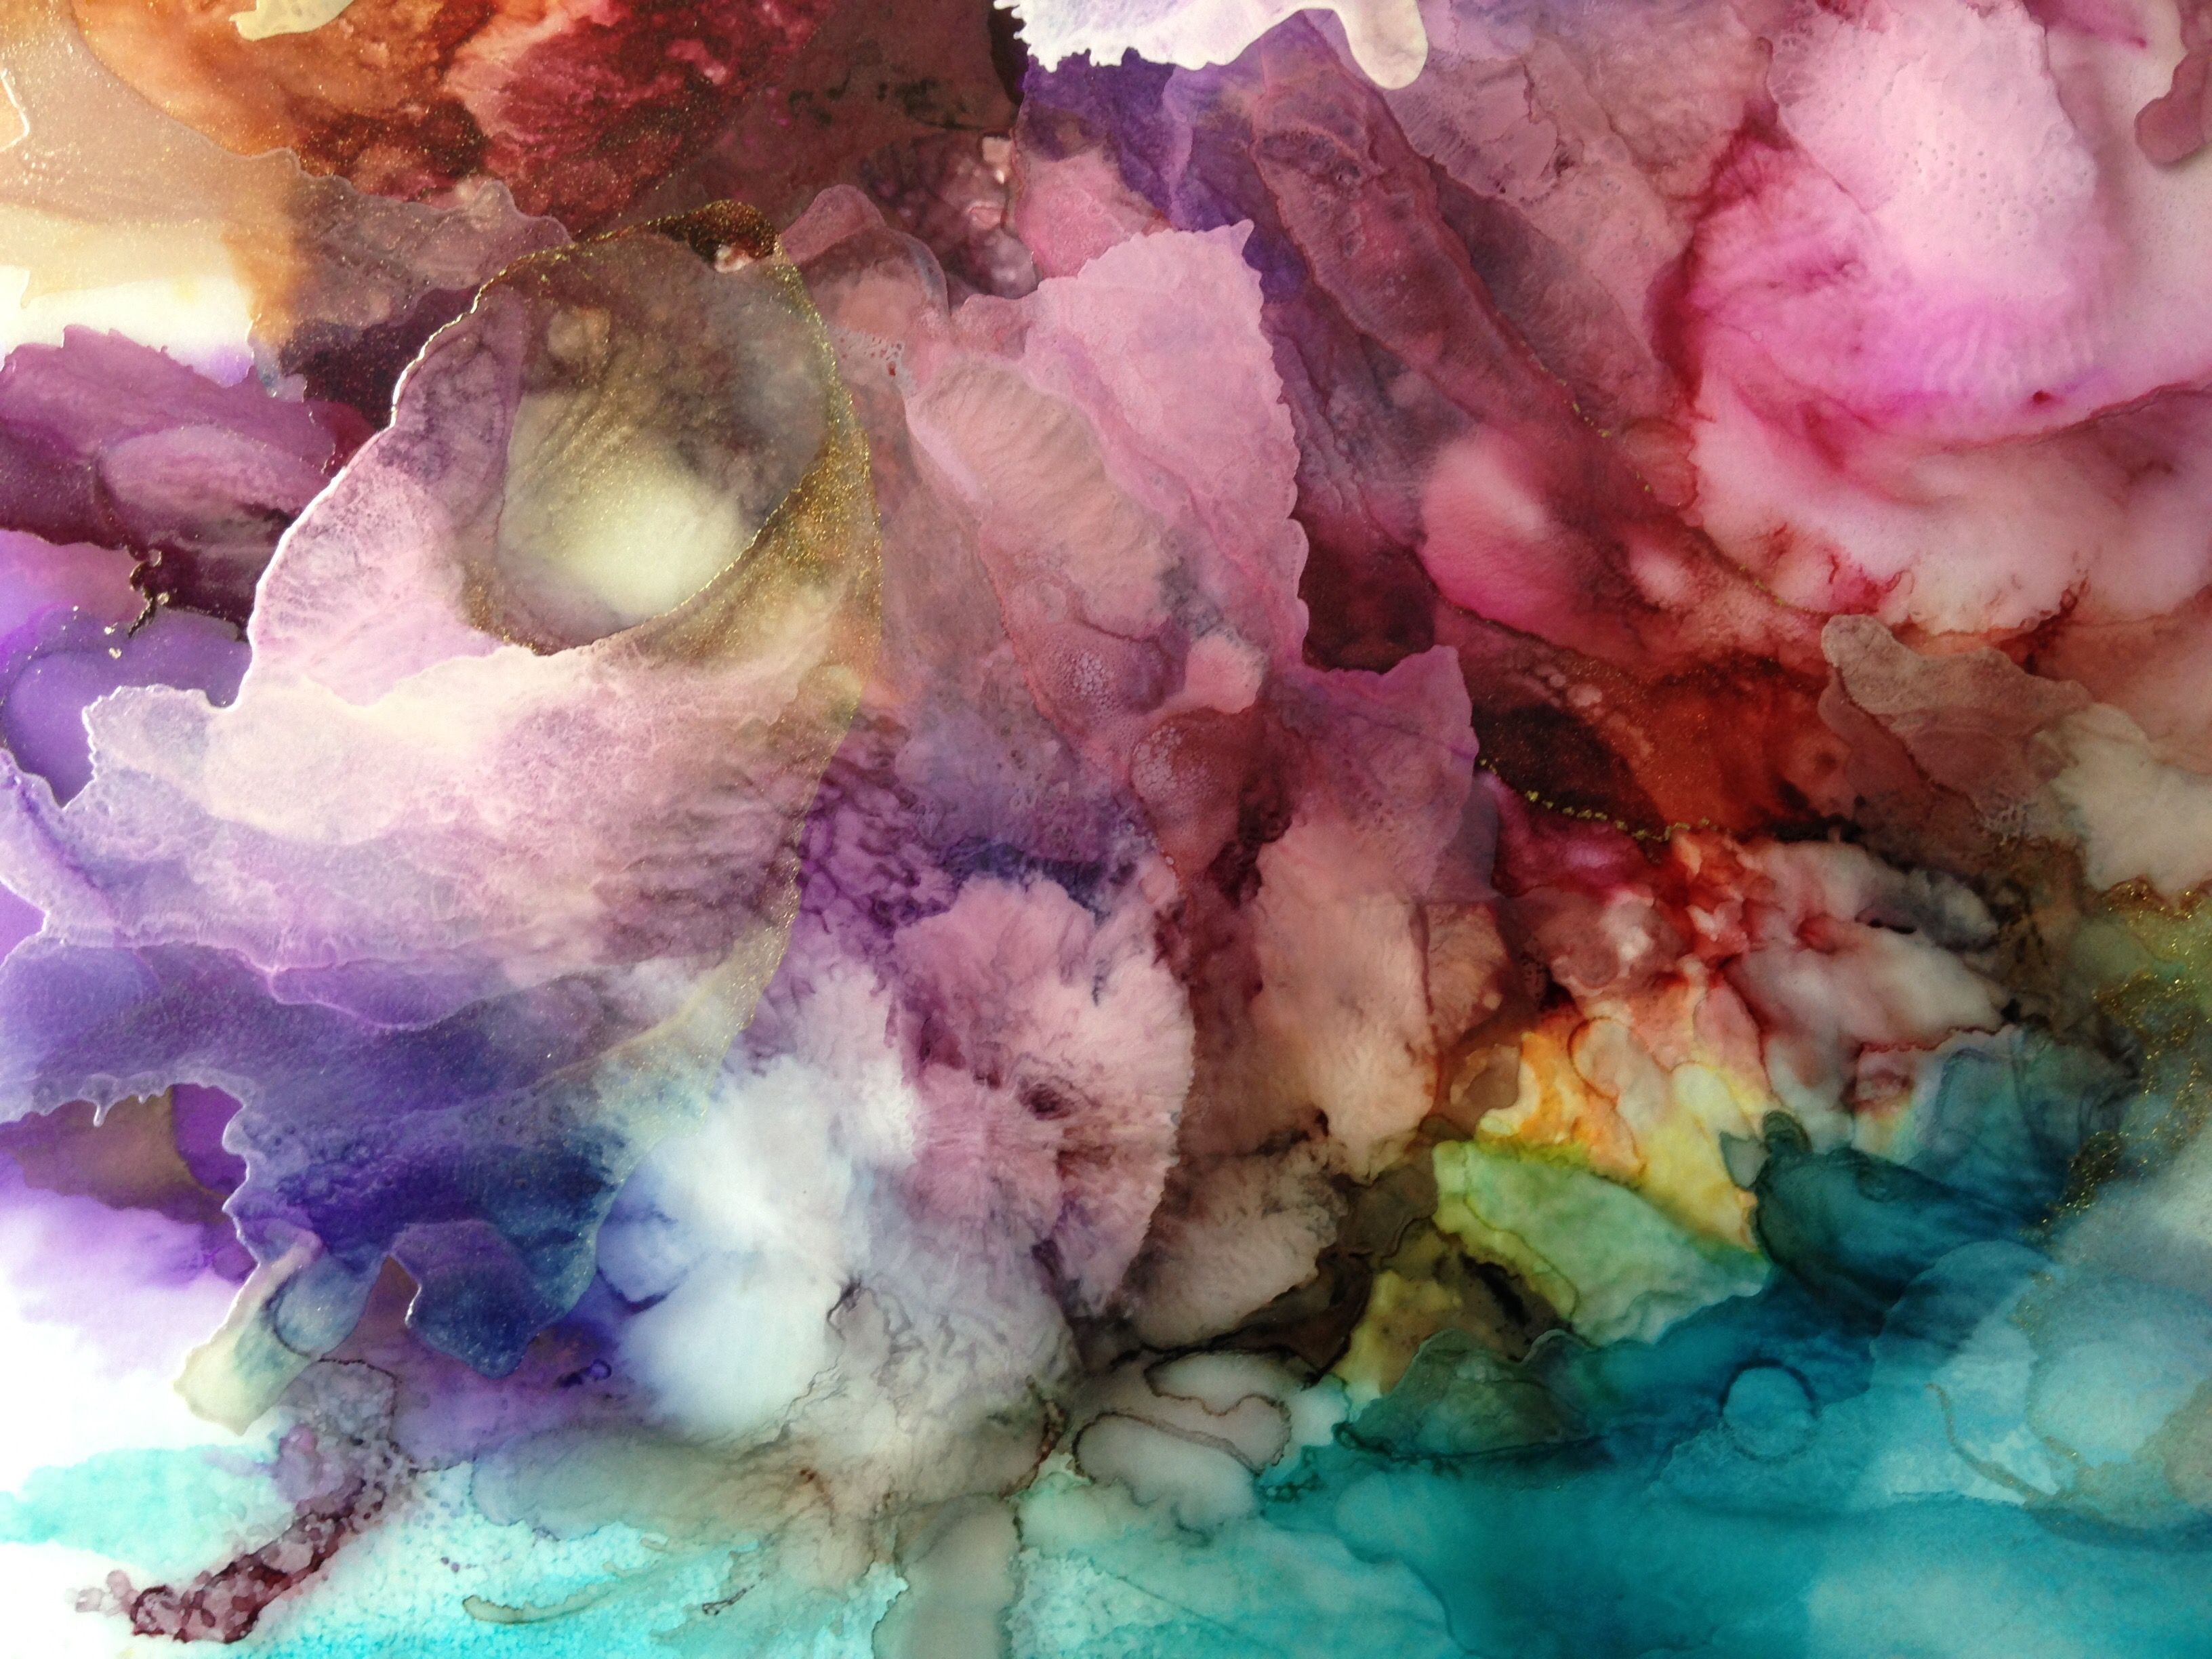 i dream in color abstract alcohol ink painting on acetate